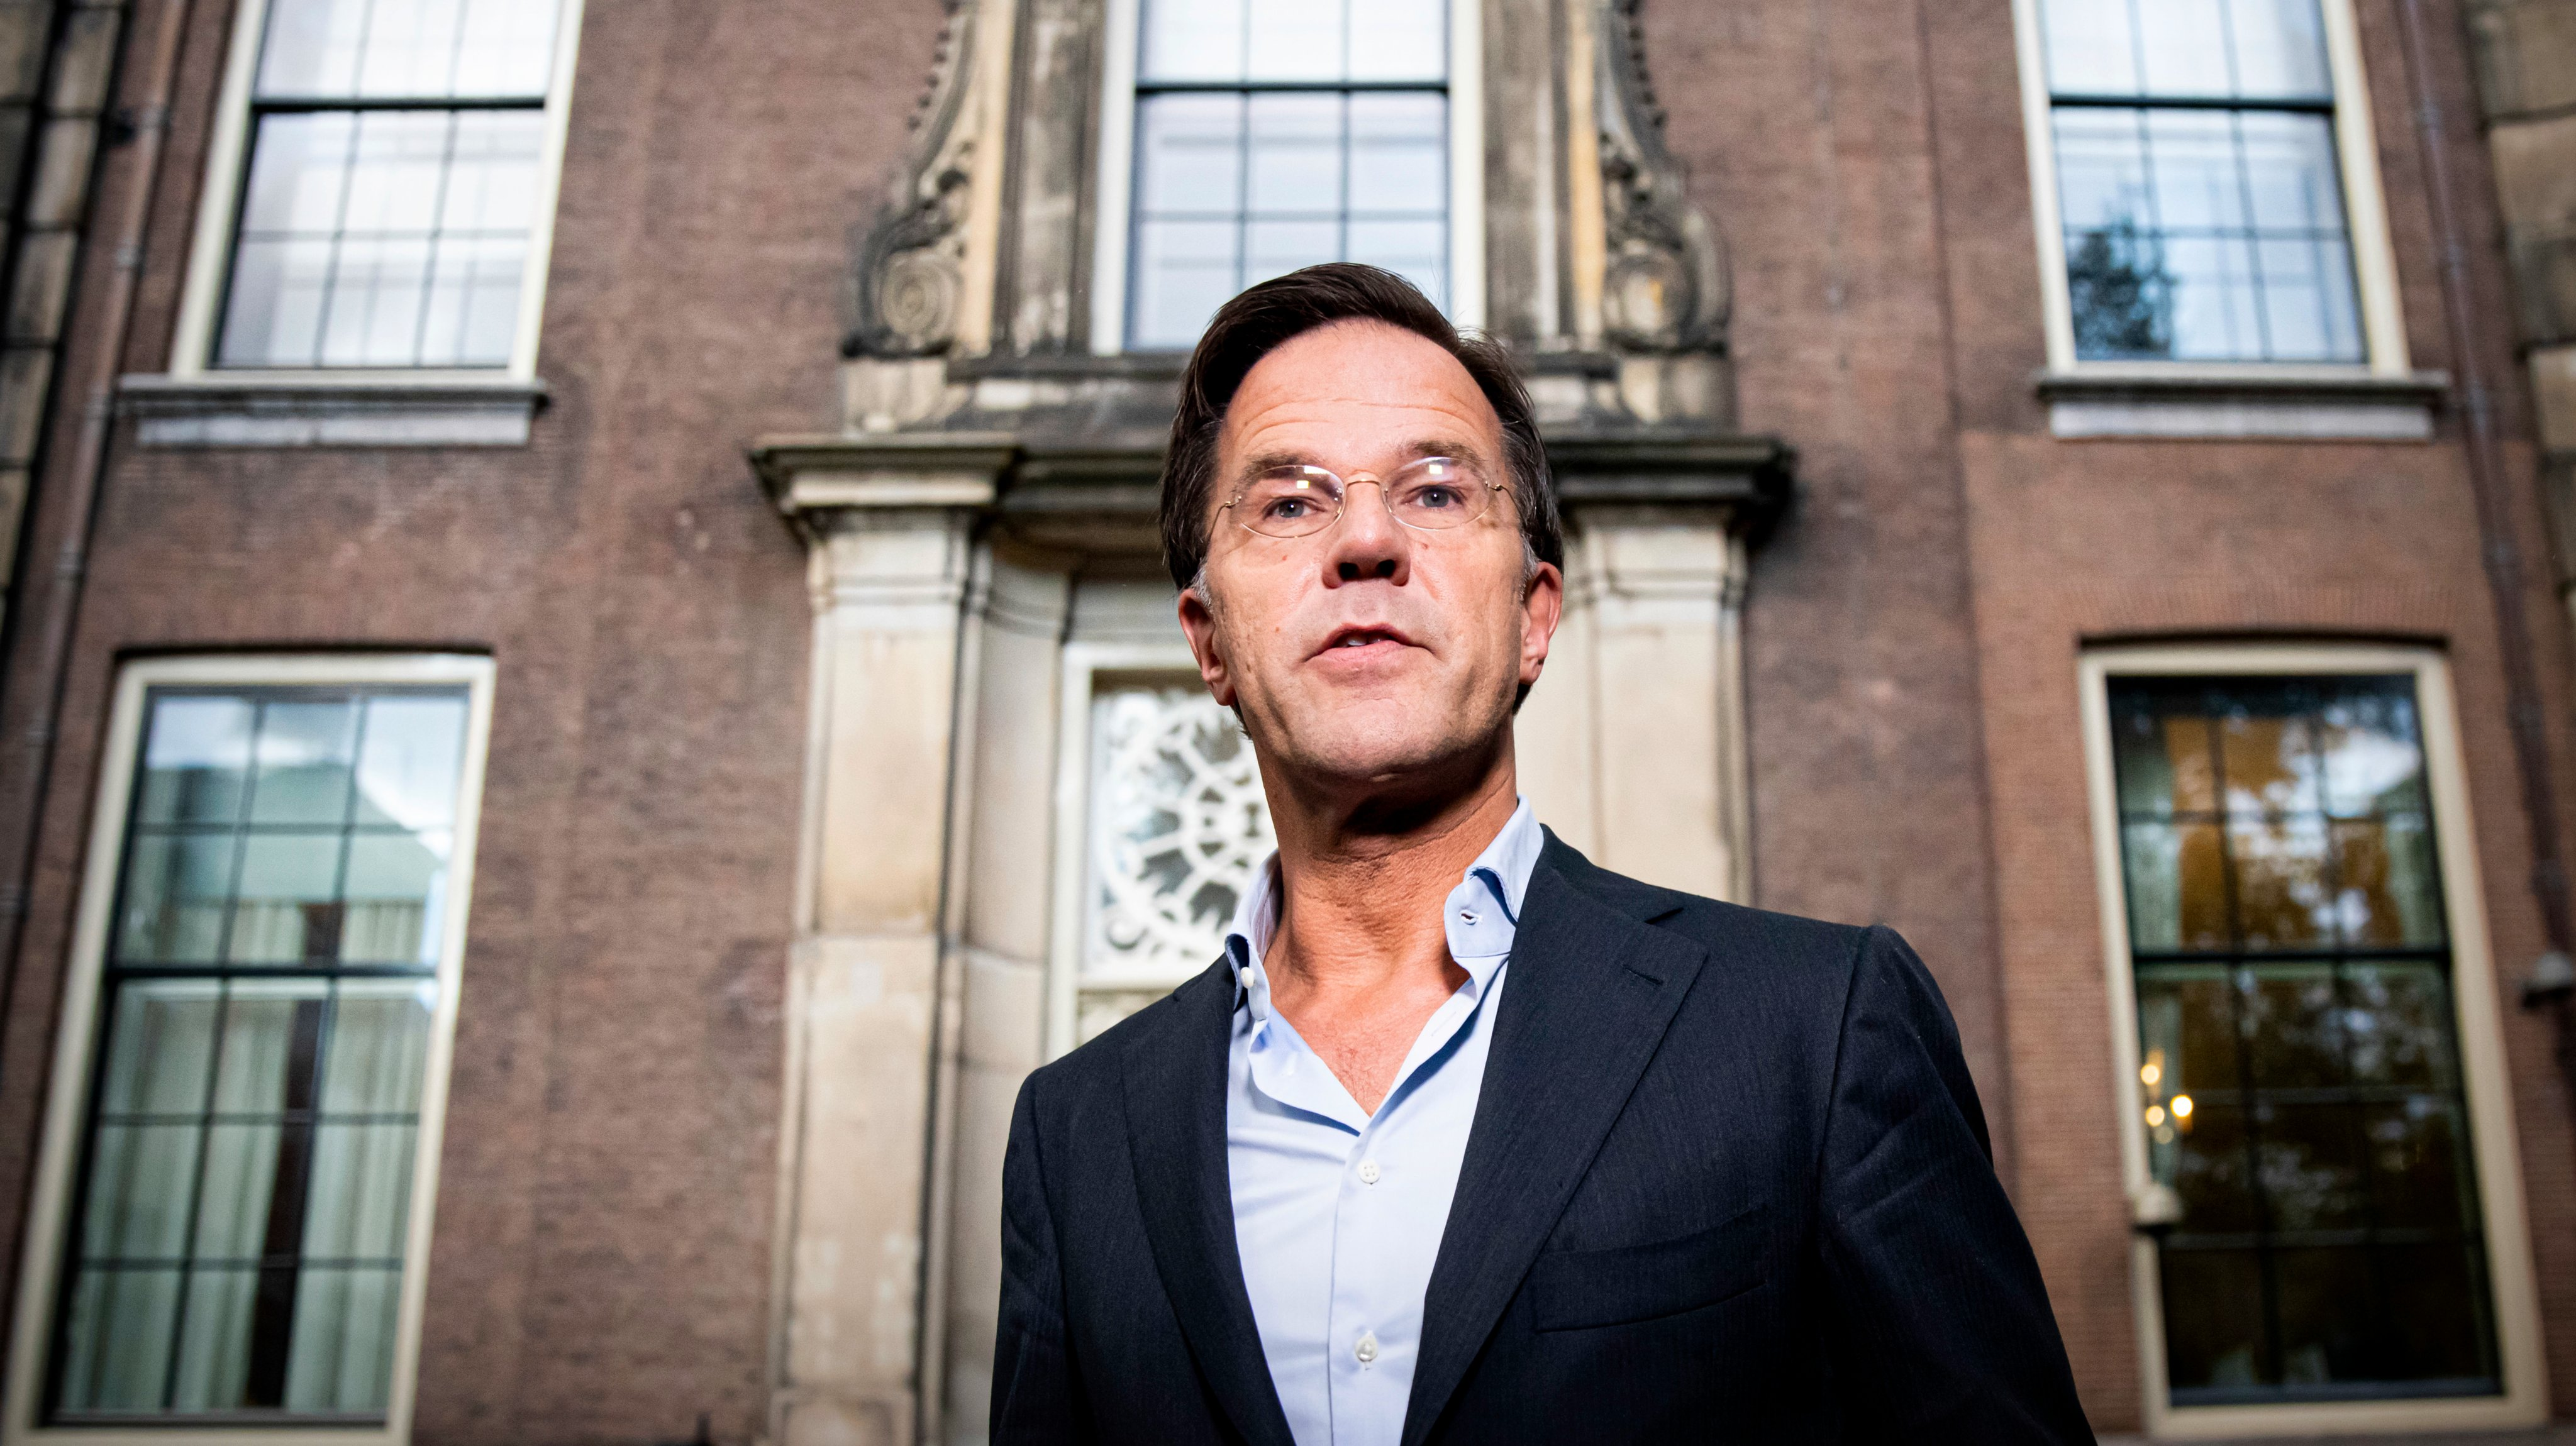 Dutch Political Party Leaders During Ultimate Formation Attempt